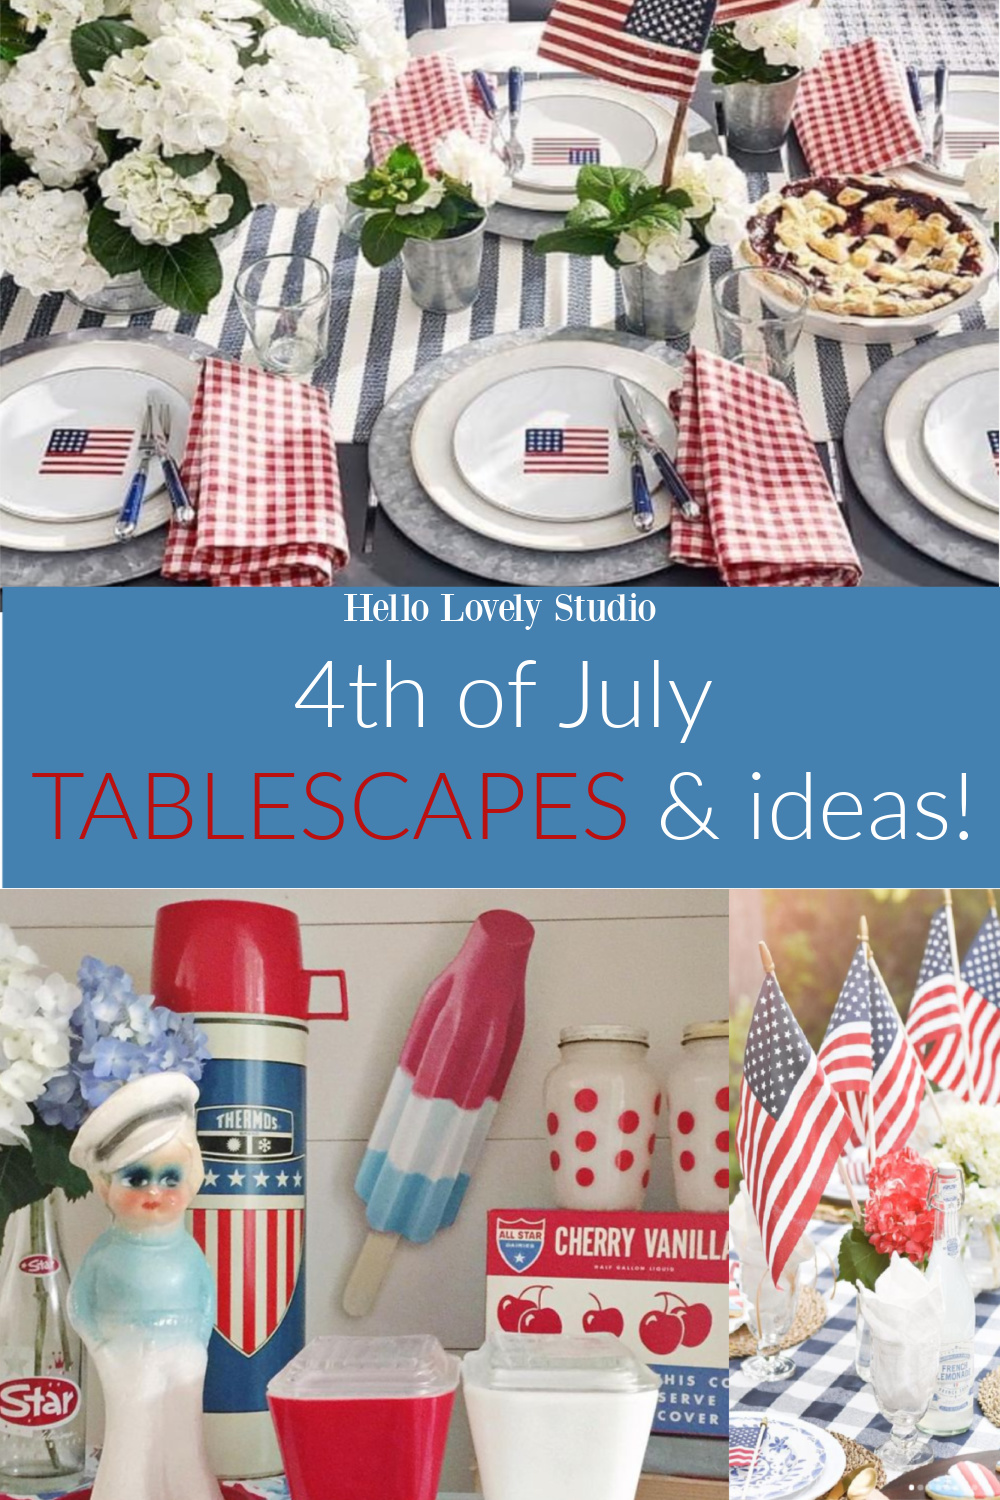 4th of July Tablescapes & Ideas - come explore inspiration on Hello Lovely. #tablescapes #tabledecor #july4 #partyideas